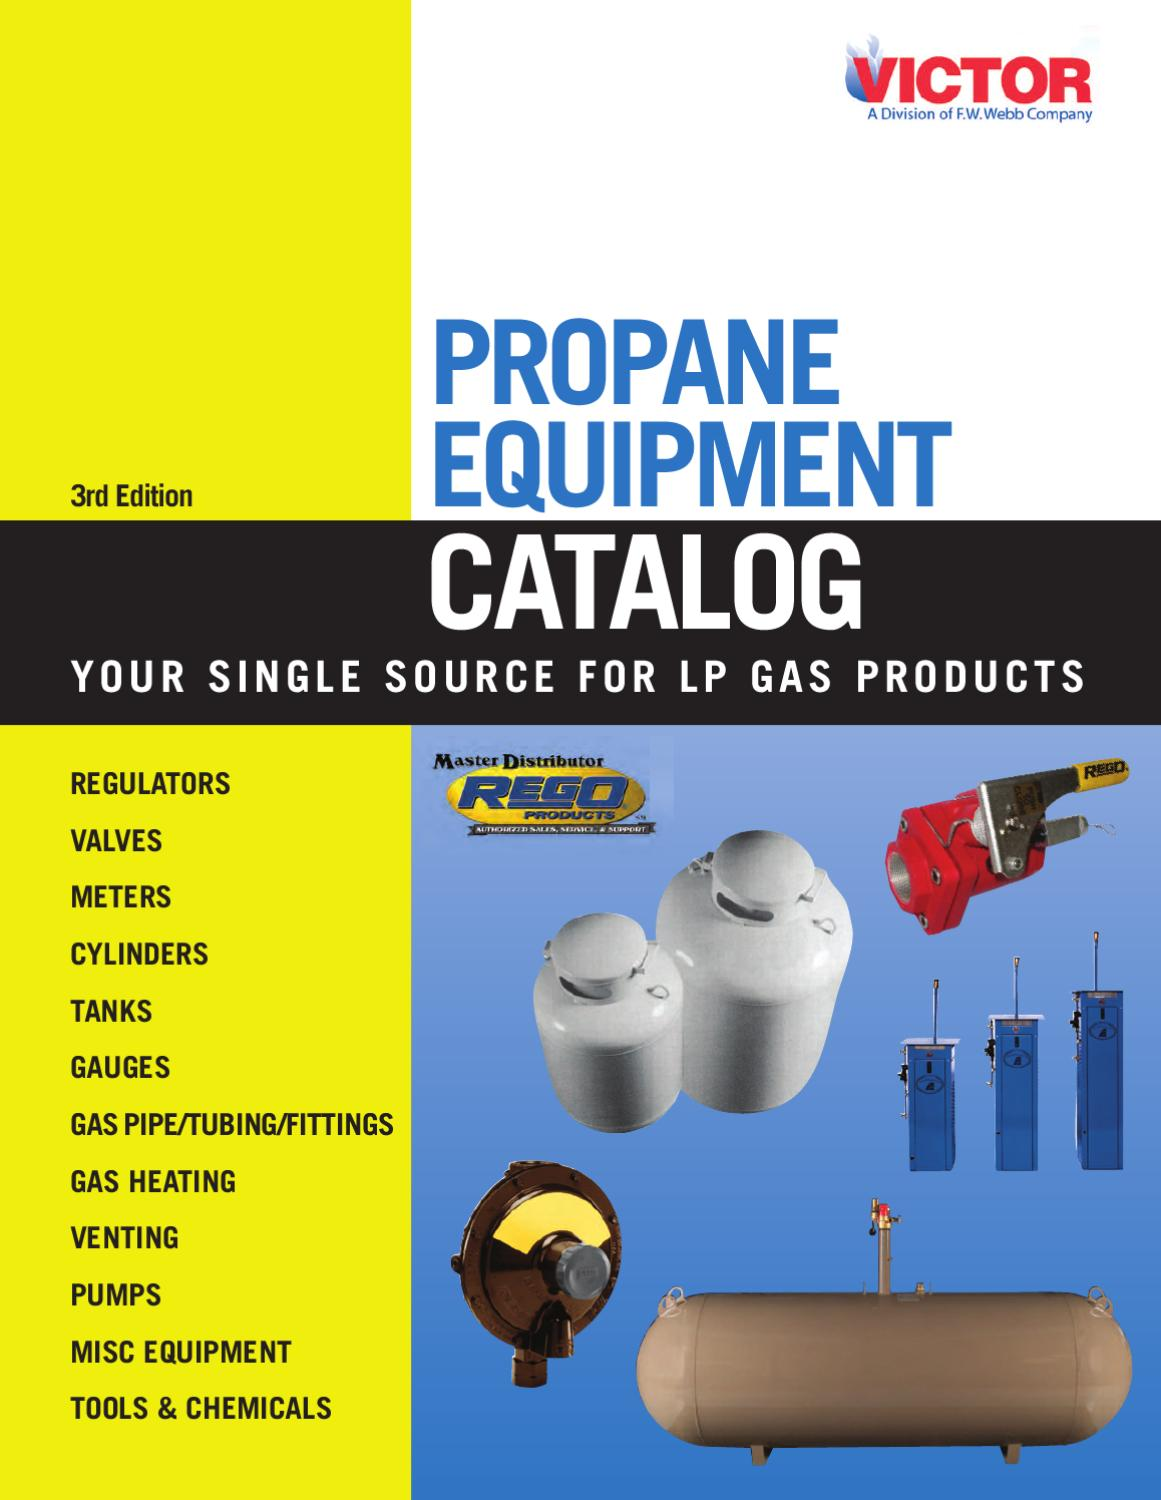 Victor Lp Gas Equipment Catalog By Fw Webb Company Issuu Fuel Filters